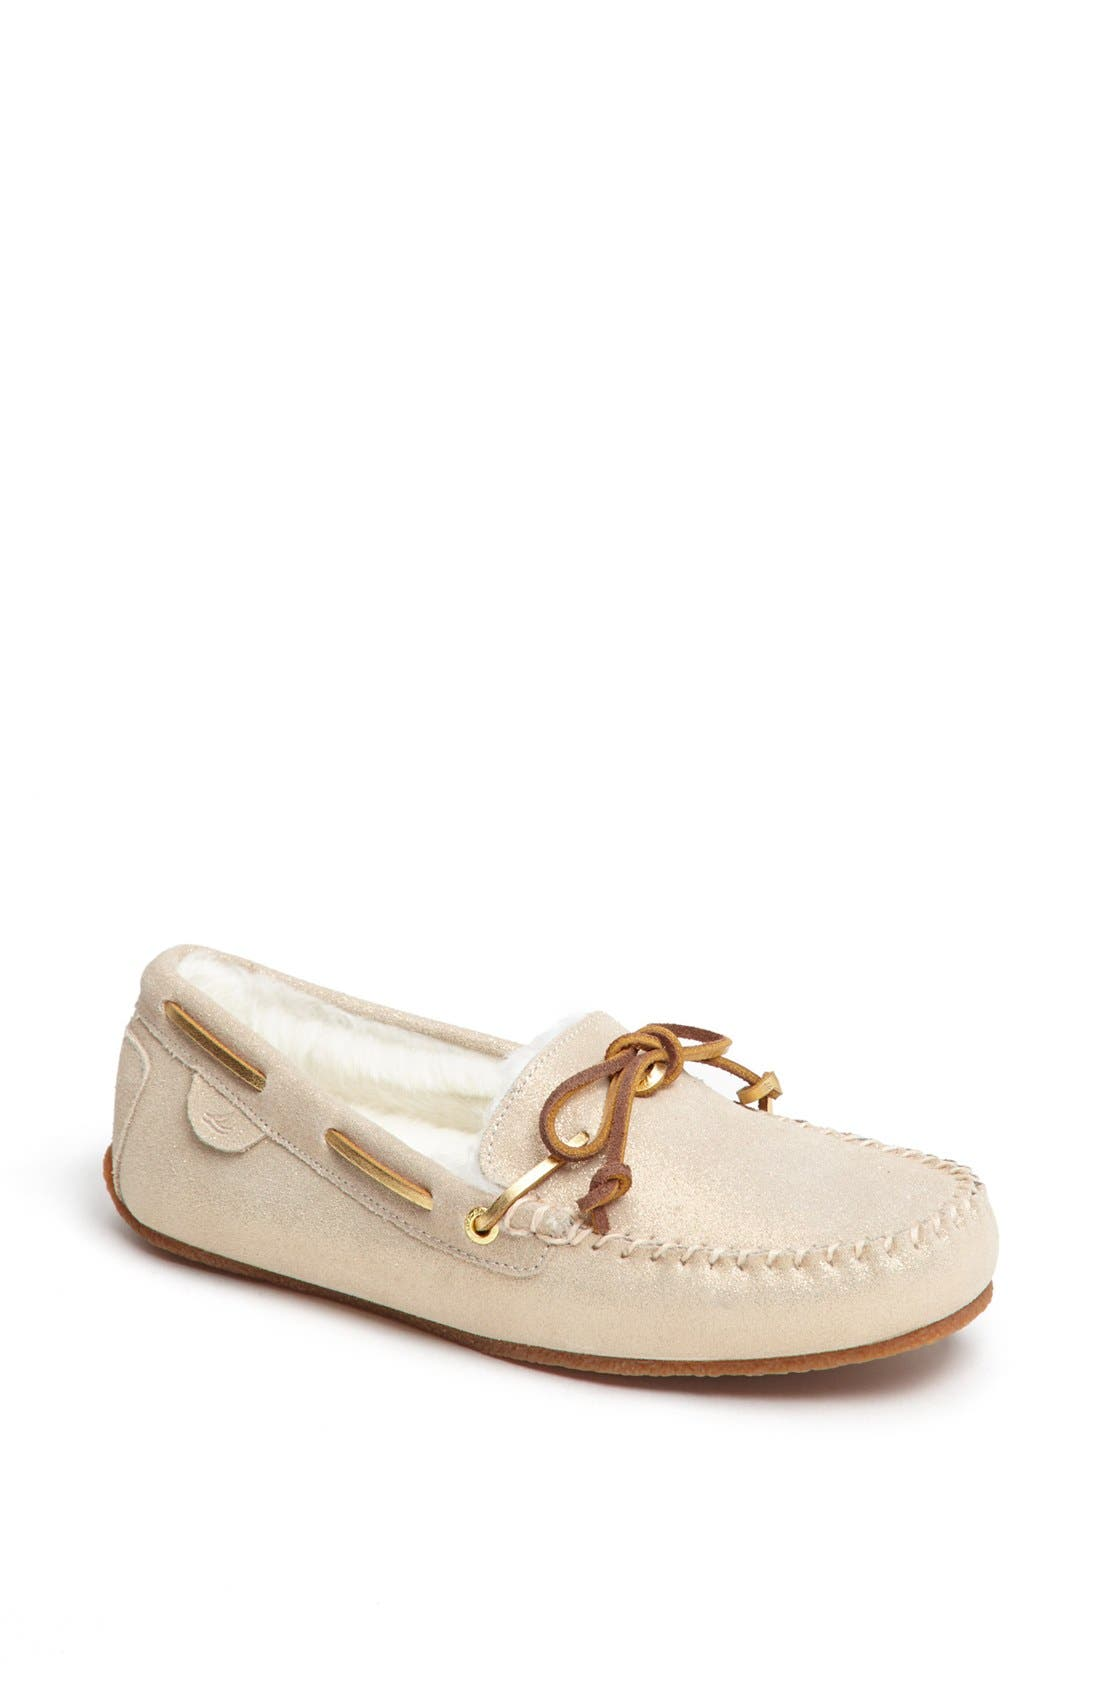 Alternate Image 1 Selected - Sperry Top-Sider® 'Scarlett' Faux Fur Slipper